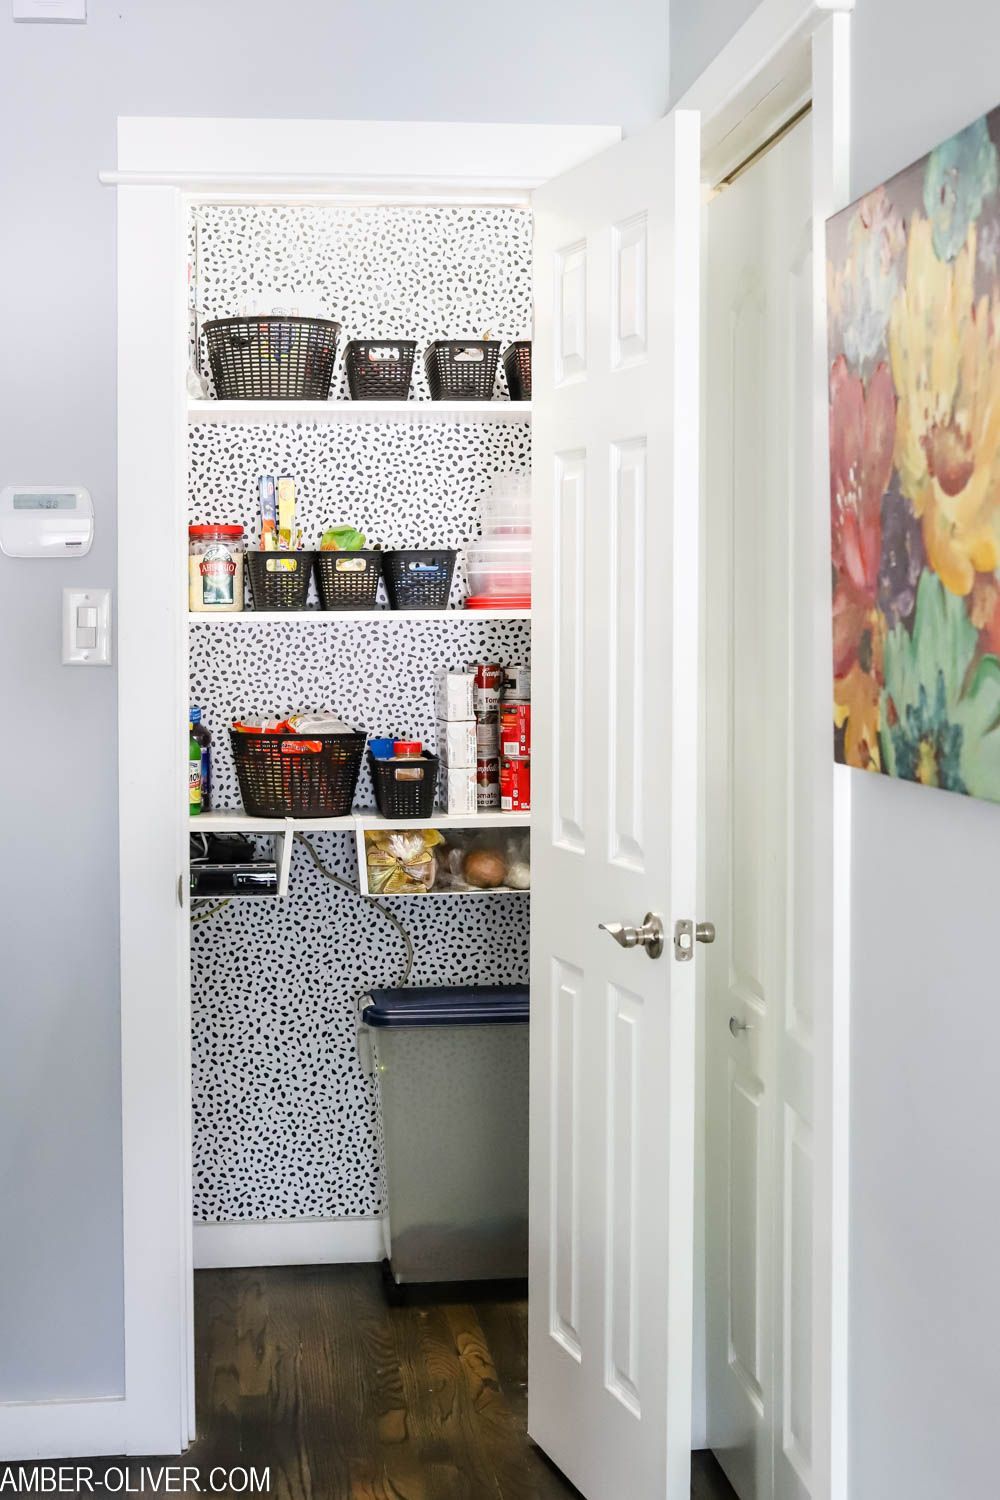 Learn How To Apply Peel And Stick Wallpaper Quickly And Easily See How We Transformed Our Pantry F Peel And Stick Wallpaper Wallpaper Shelves Pantry Wallpaper